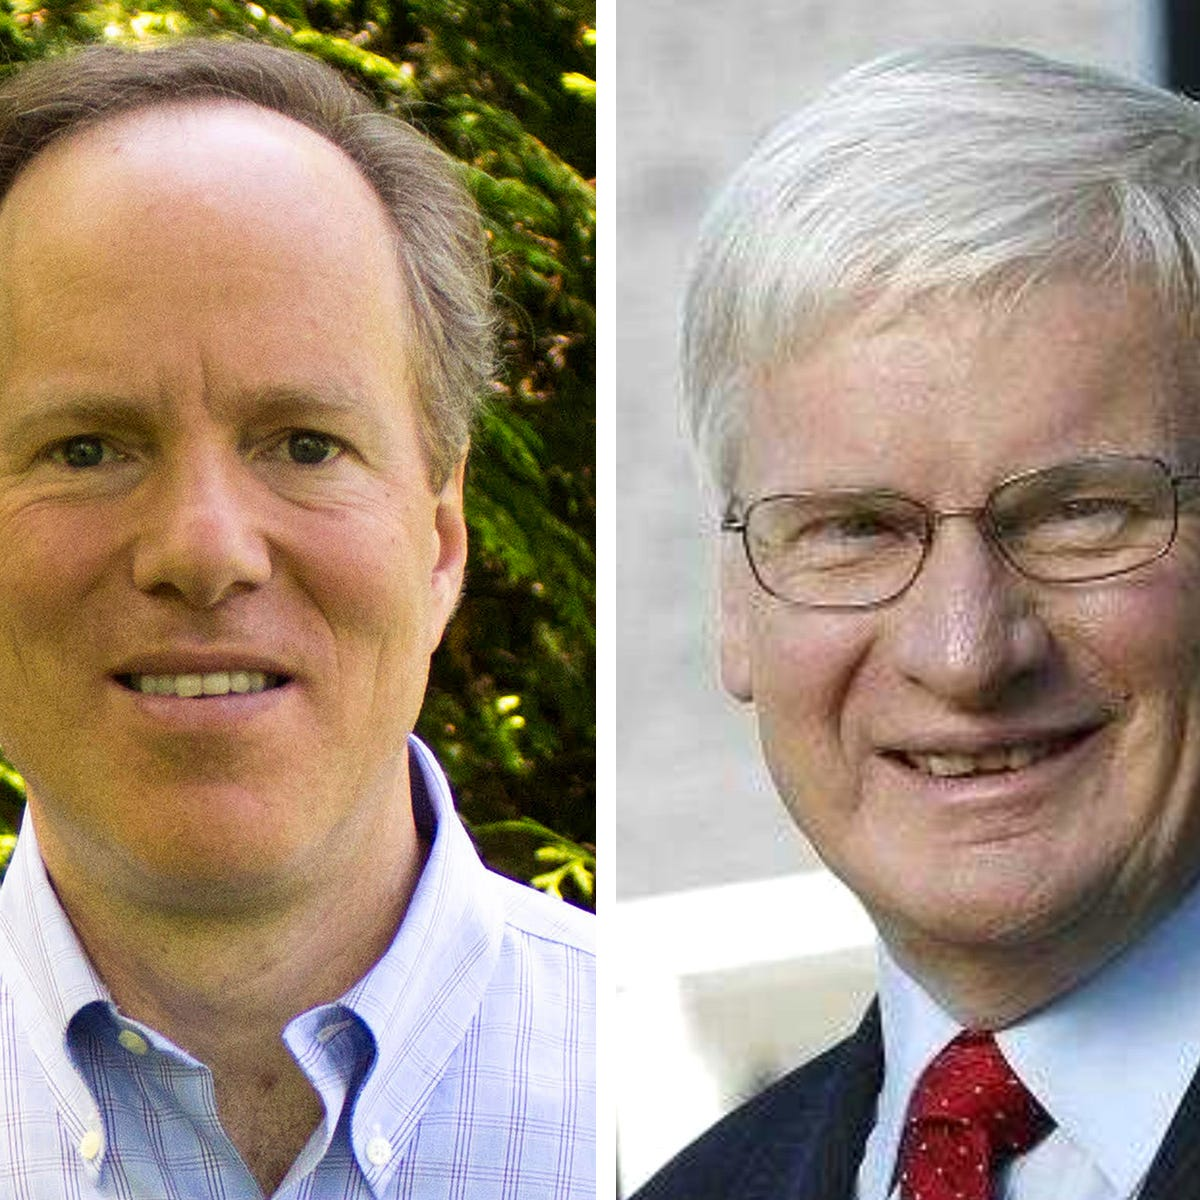 Dan Kohl battles incumbent Republican Glenn Grothman in hopes of turning reliable red House seat blue